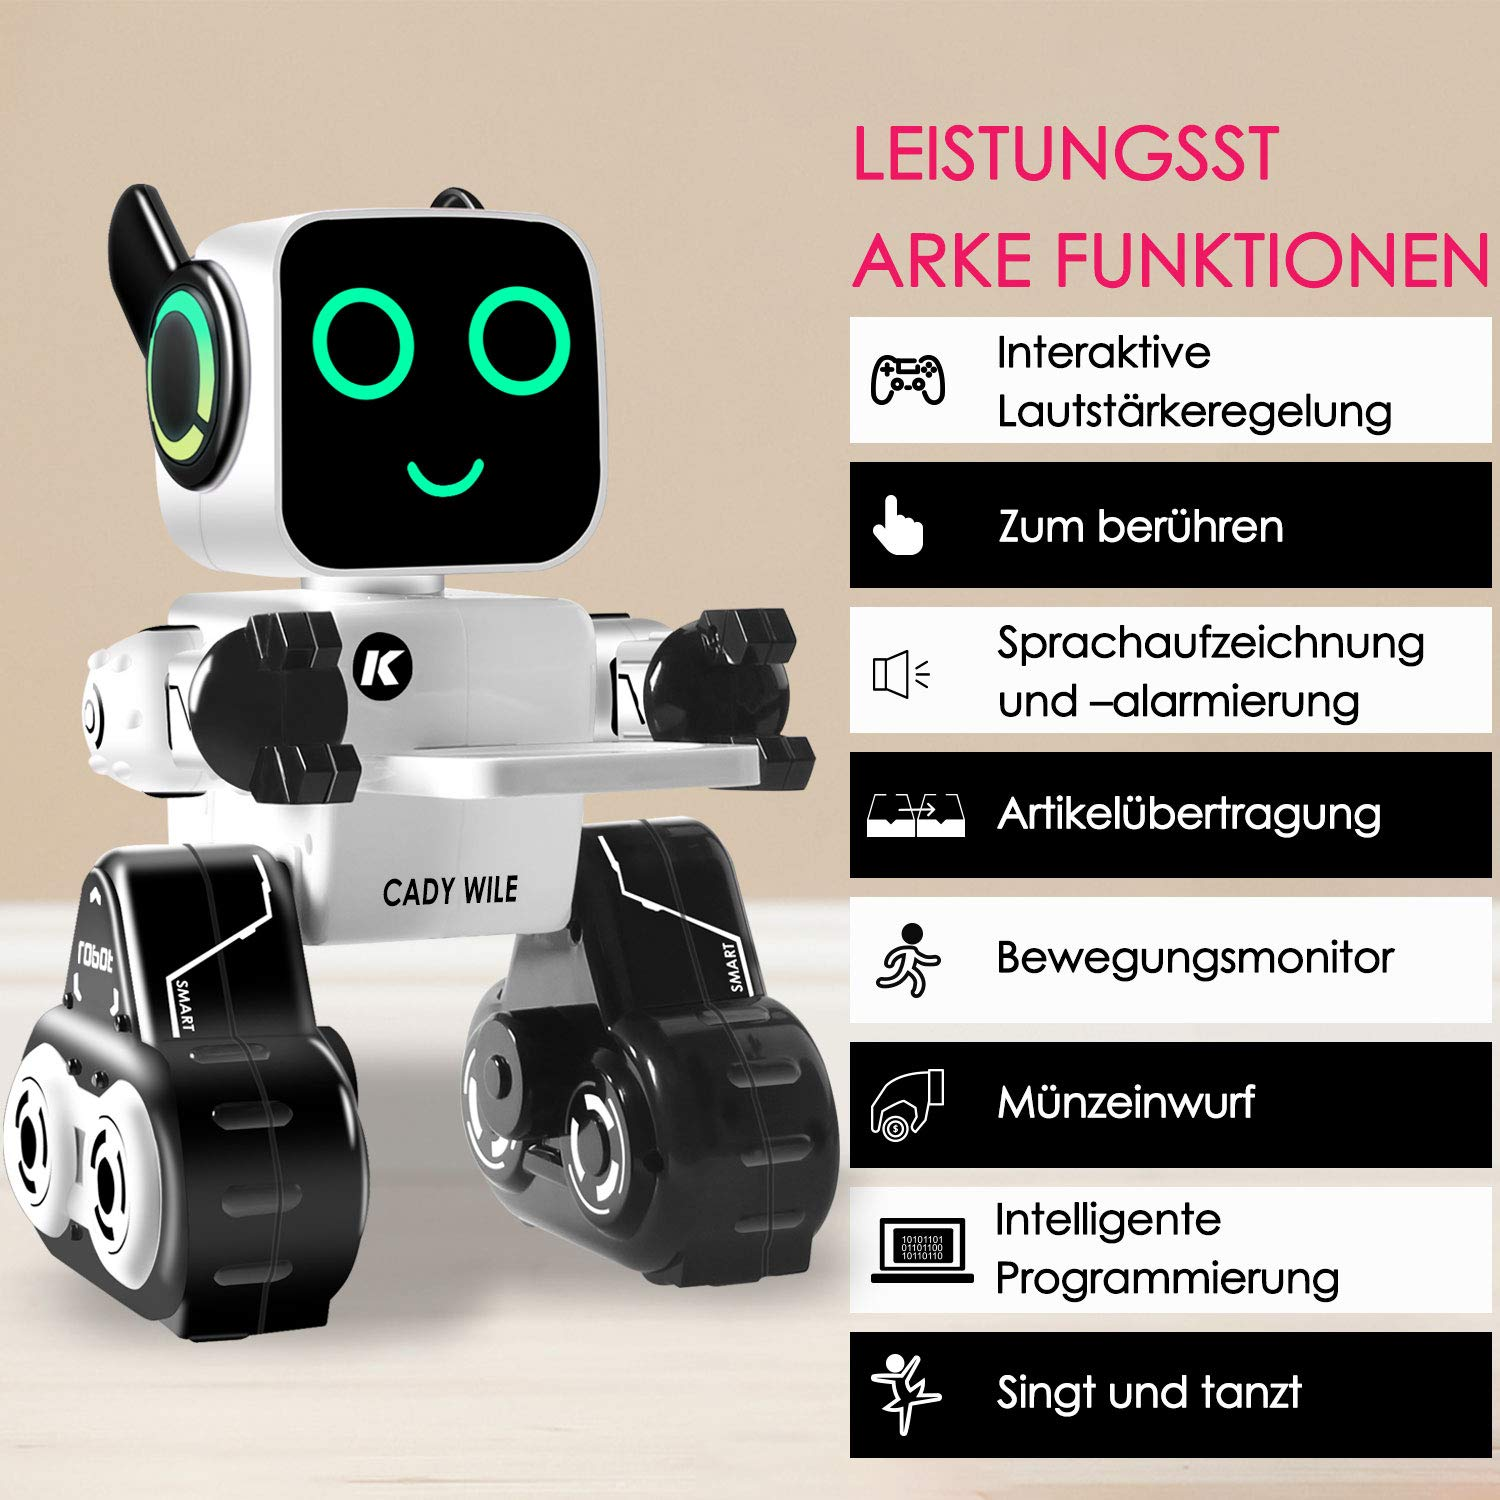 Remote Control Toy Robot for kids,Touch & Sound Control, Speaks, Dance Moves, Plays Music, Light-up Eyes & Mouth. Built-in Coin Bank. Programmable, Rechargeable RC Robot Kit for Boys, Girls All Ages. by IHBUDS (Image #3)